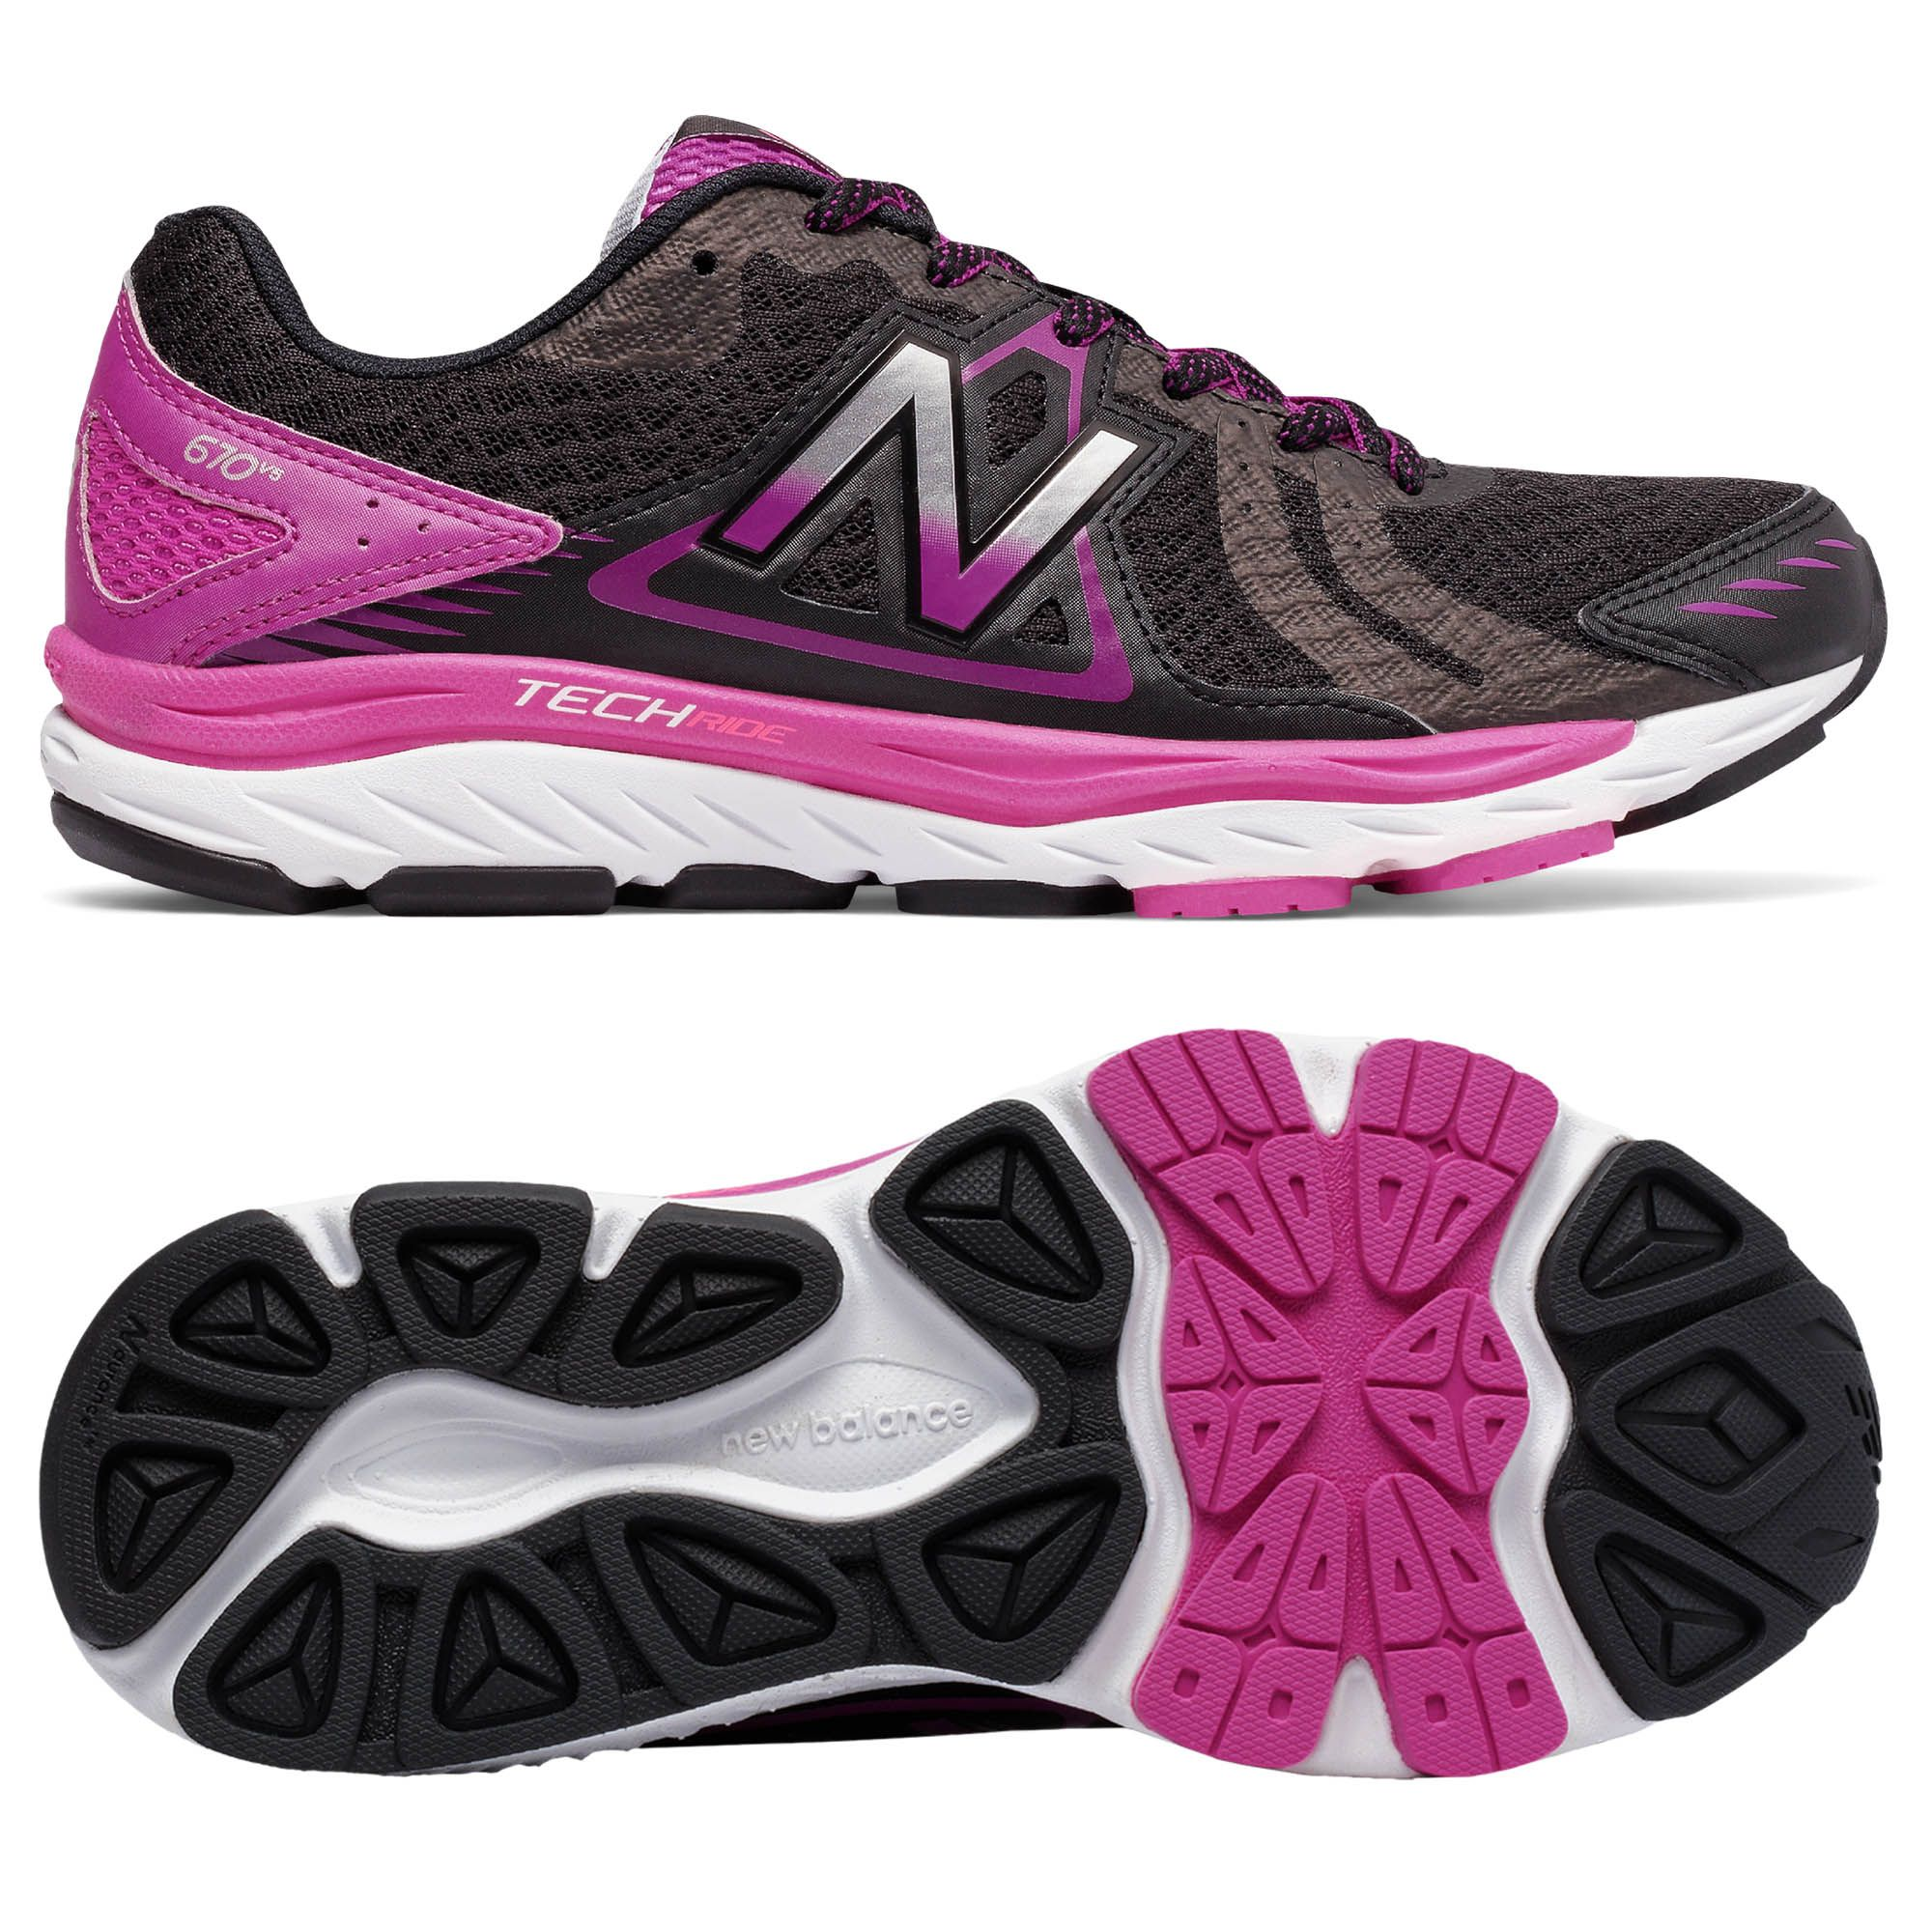 New Balance 670 Stability Trainer Ladies Running Shoes